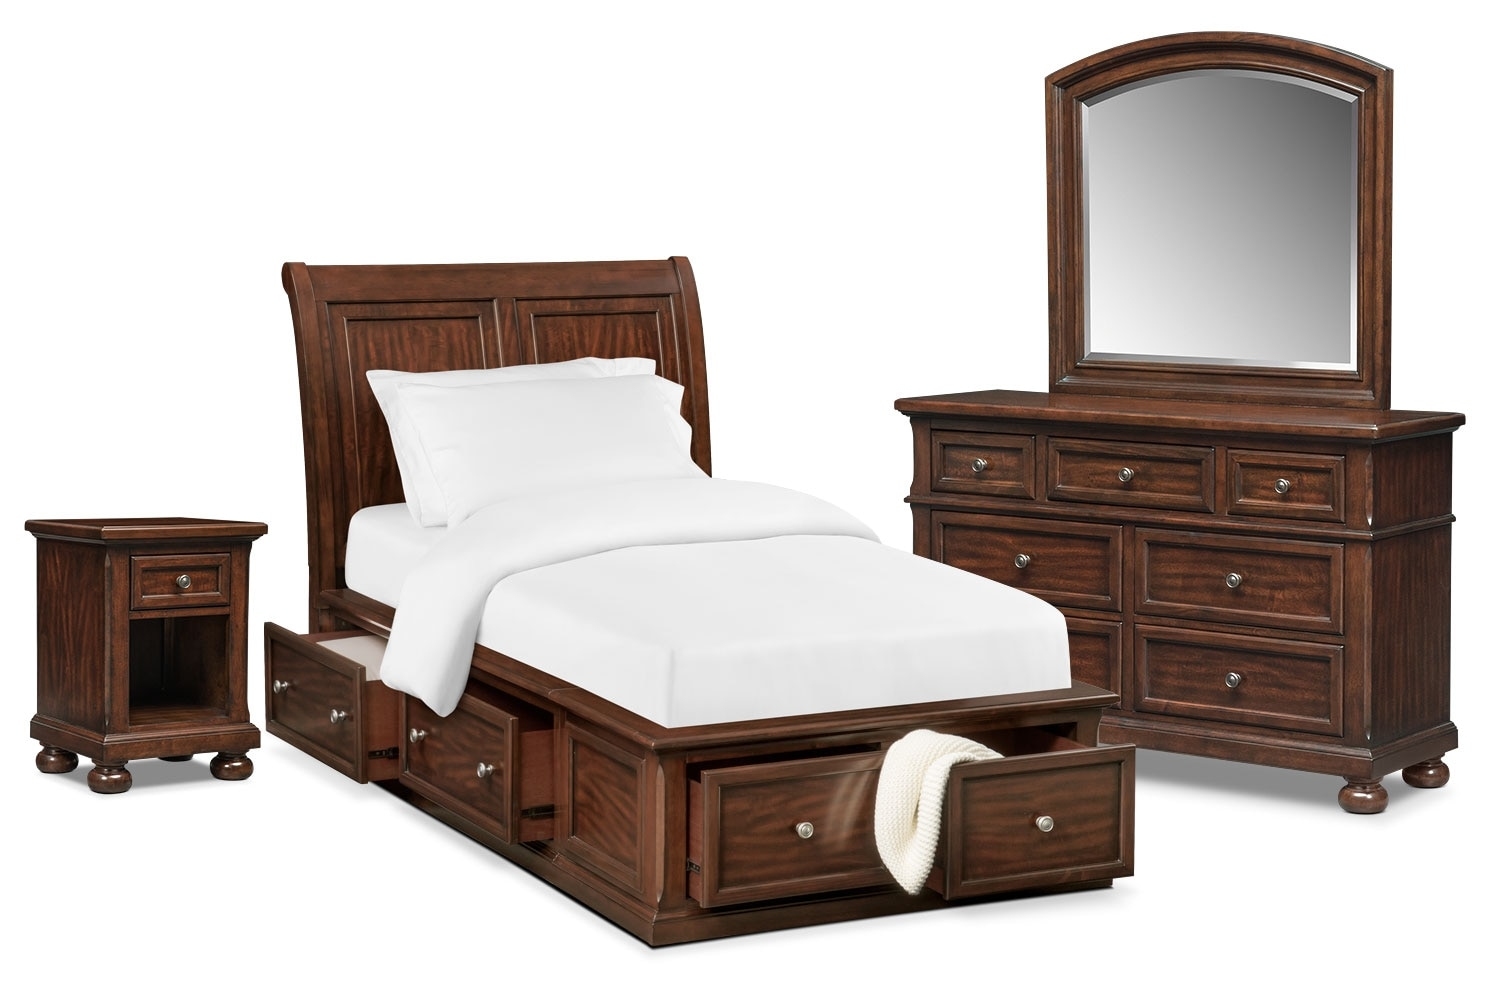 Bedroom Furniture - Hanover Youth 6-Piece Sleigh Storage Bedroom Set with Nightstand, Dresser and Mirror